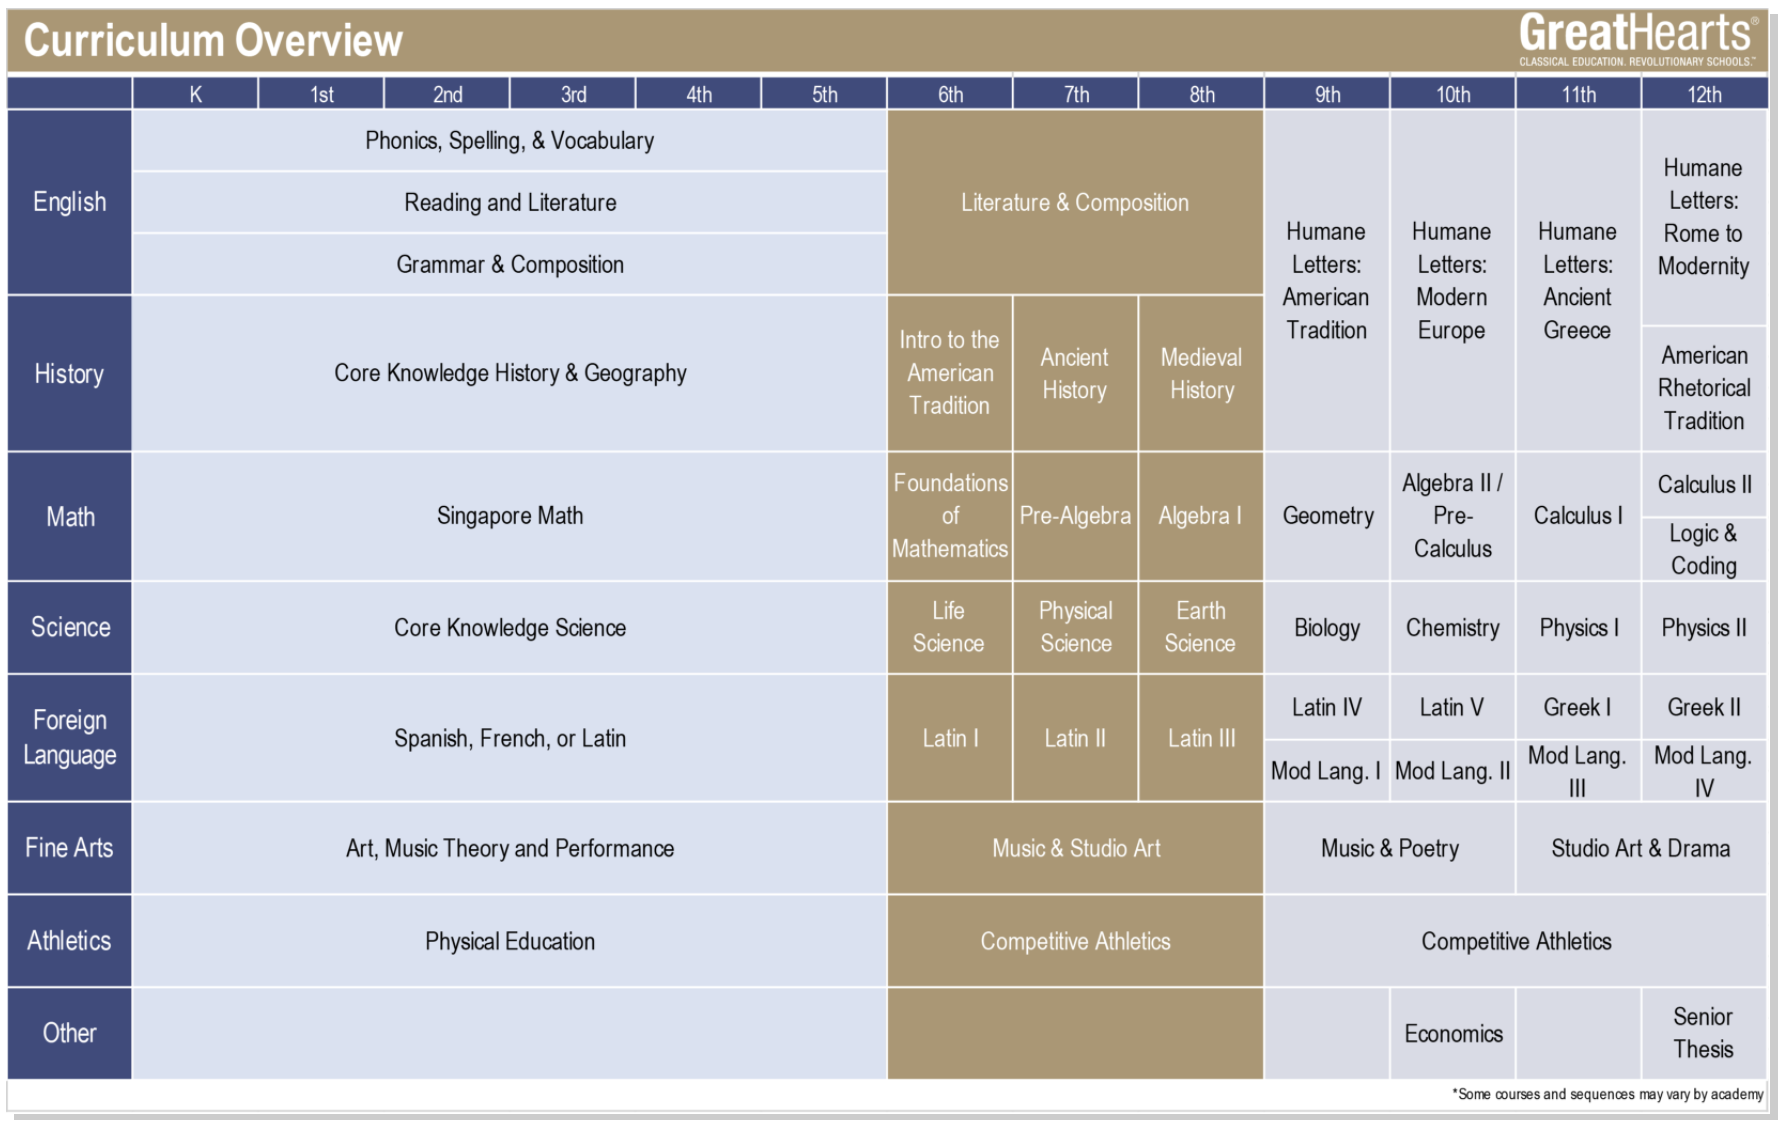 Great Hearts K-12 Curriculum Overview